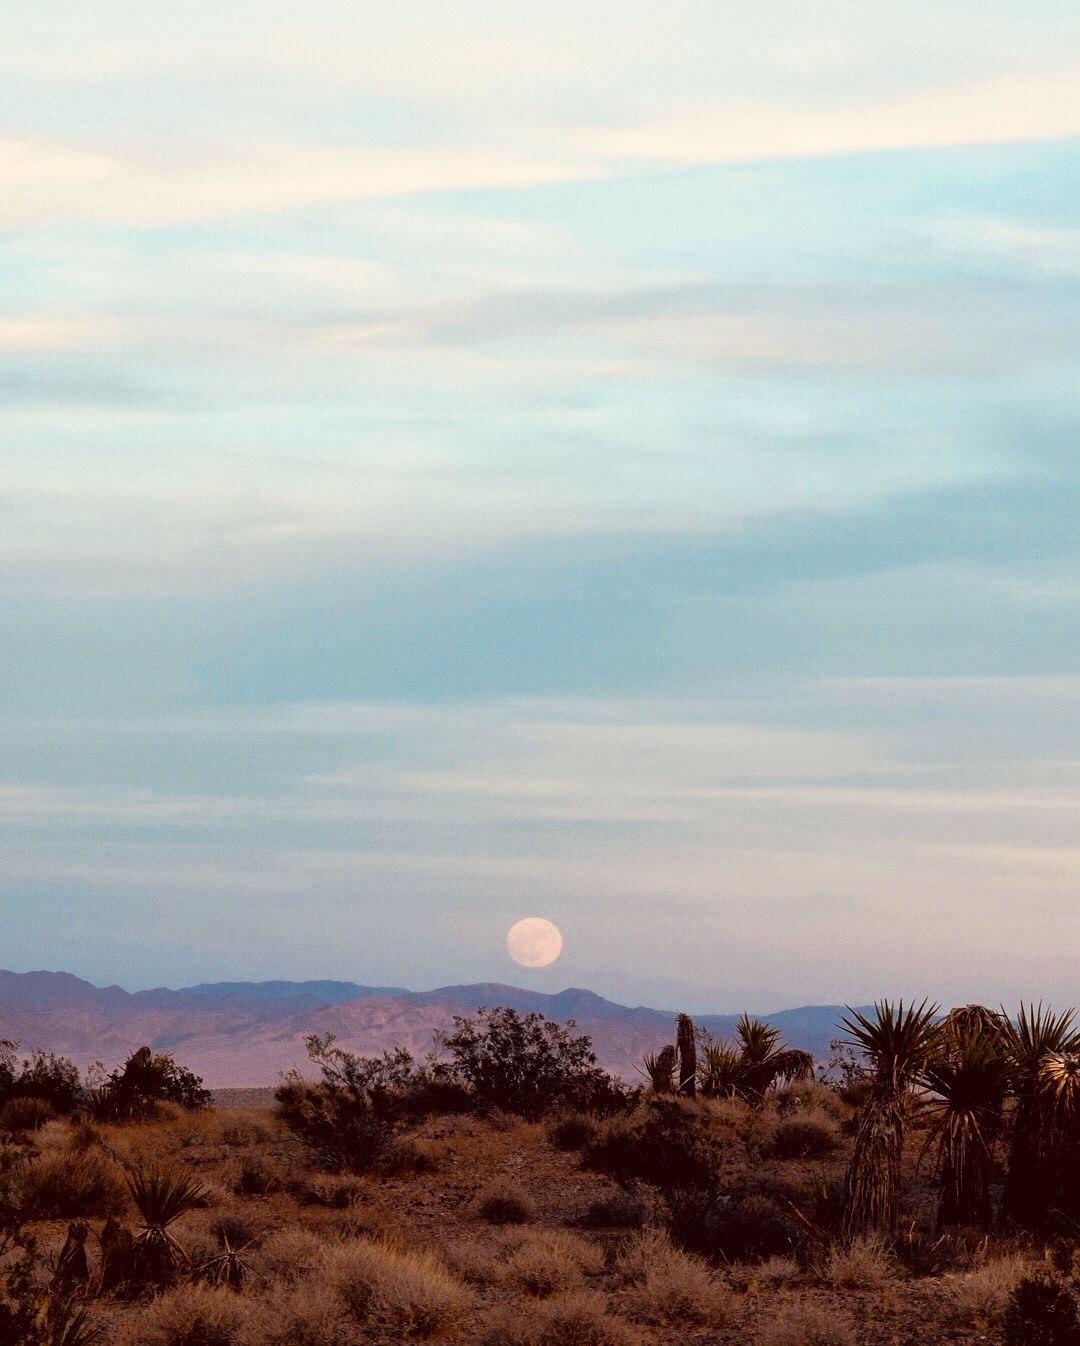 desert dream • @thoughtfulness #desertlife